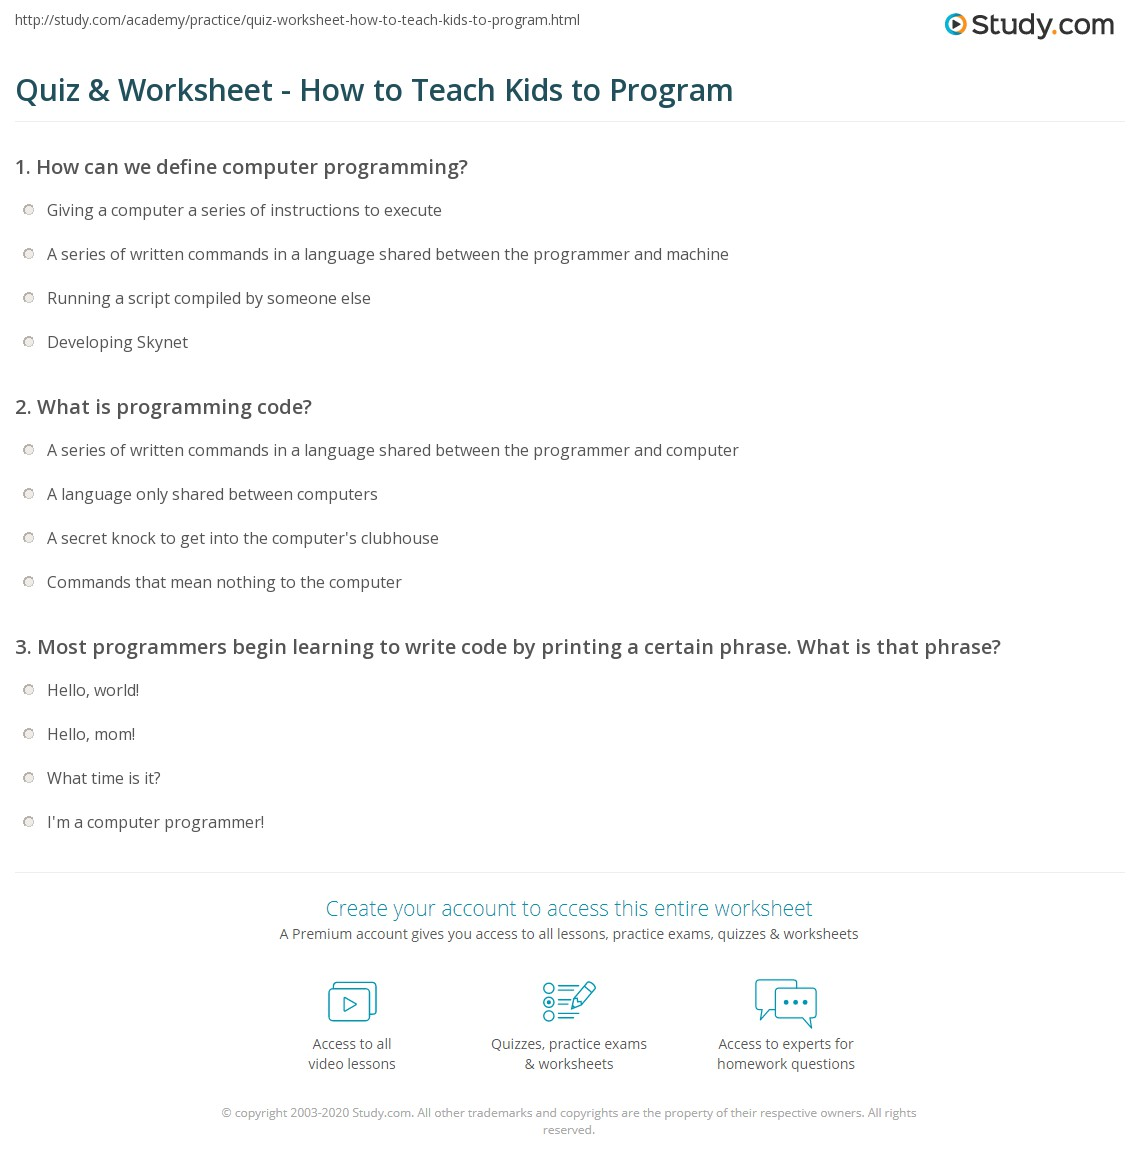 Quiz & Worksheet - How to Teach Kids to Program | Study com